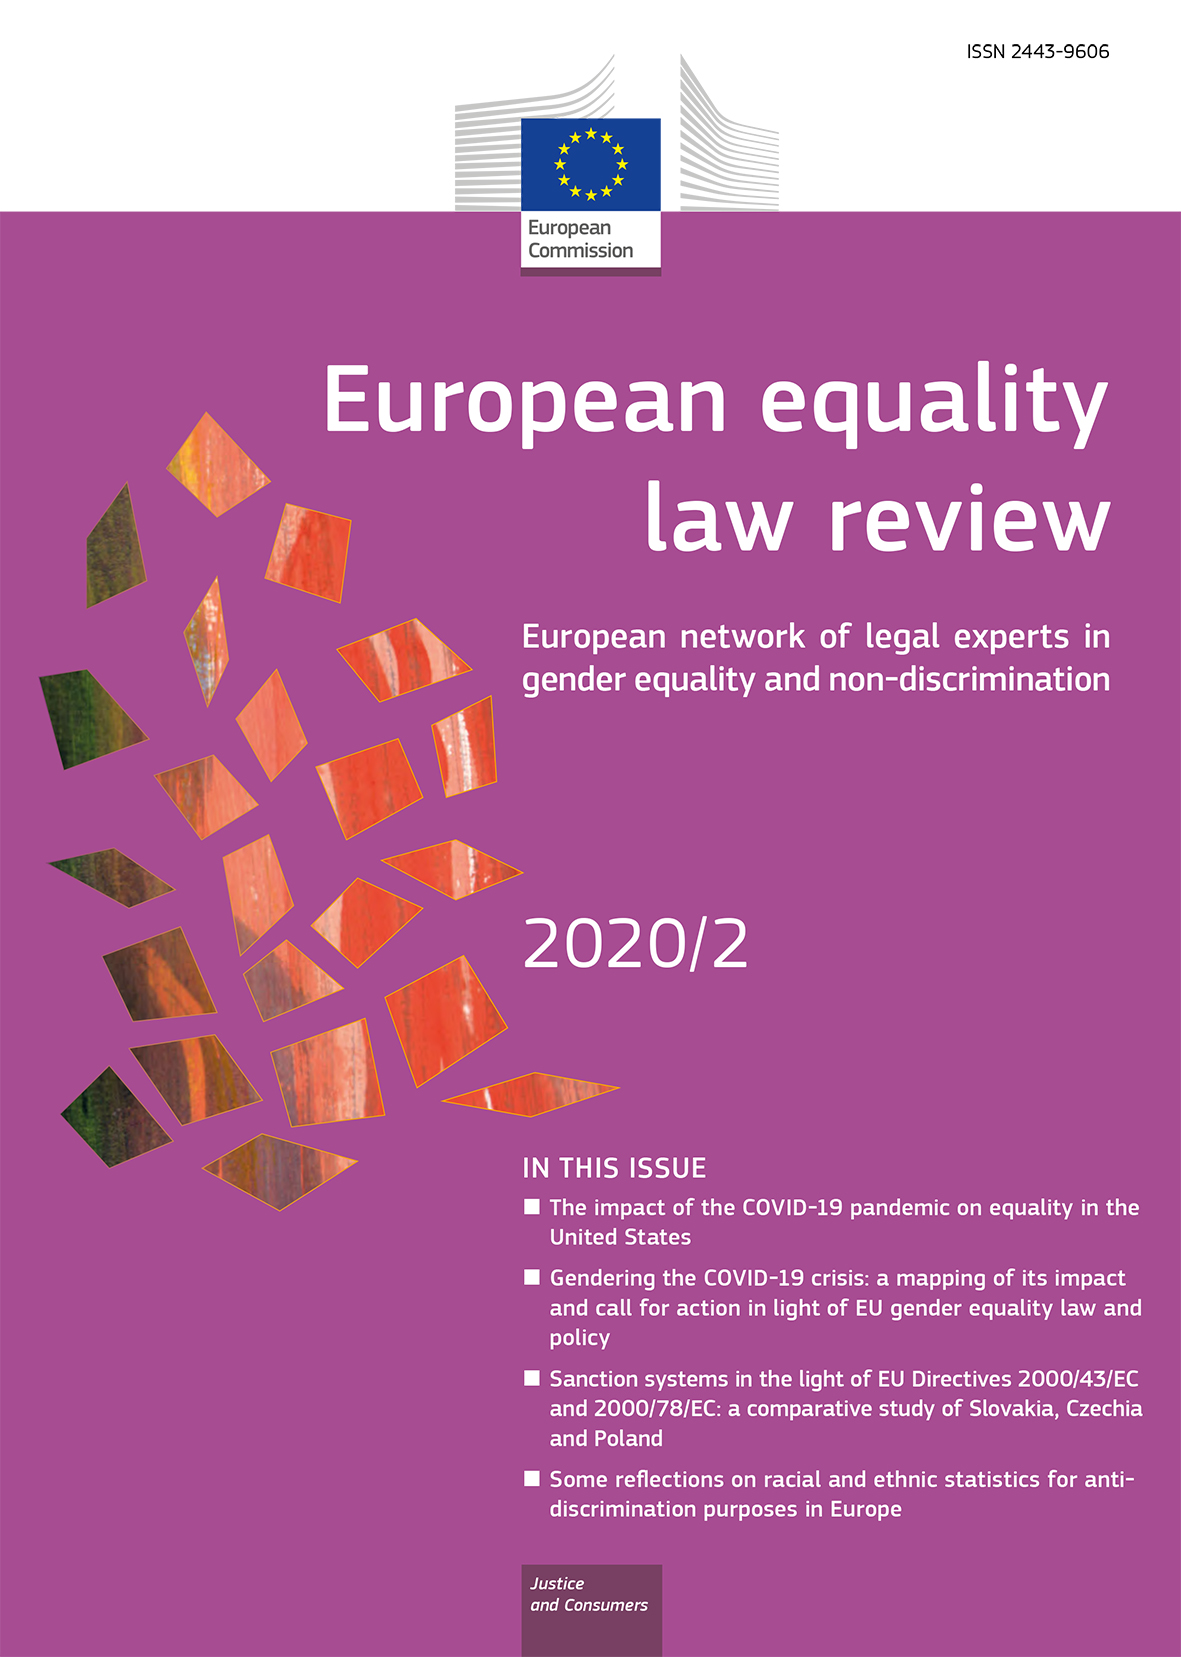 European equality law review 2 [2020] (PDF 1,45 MB)